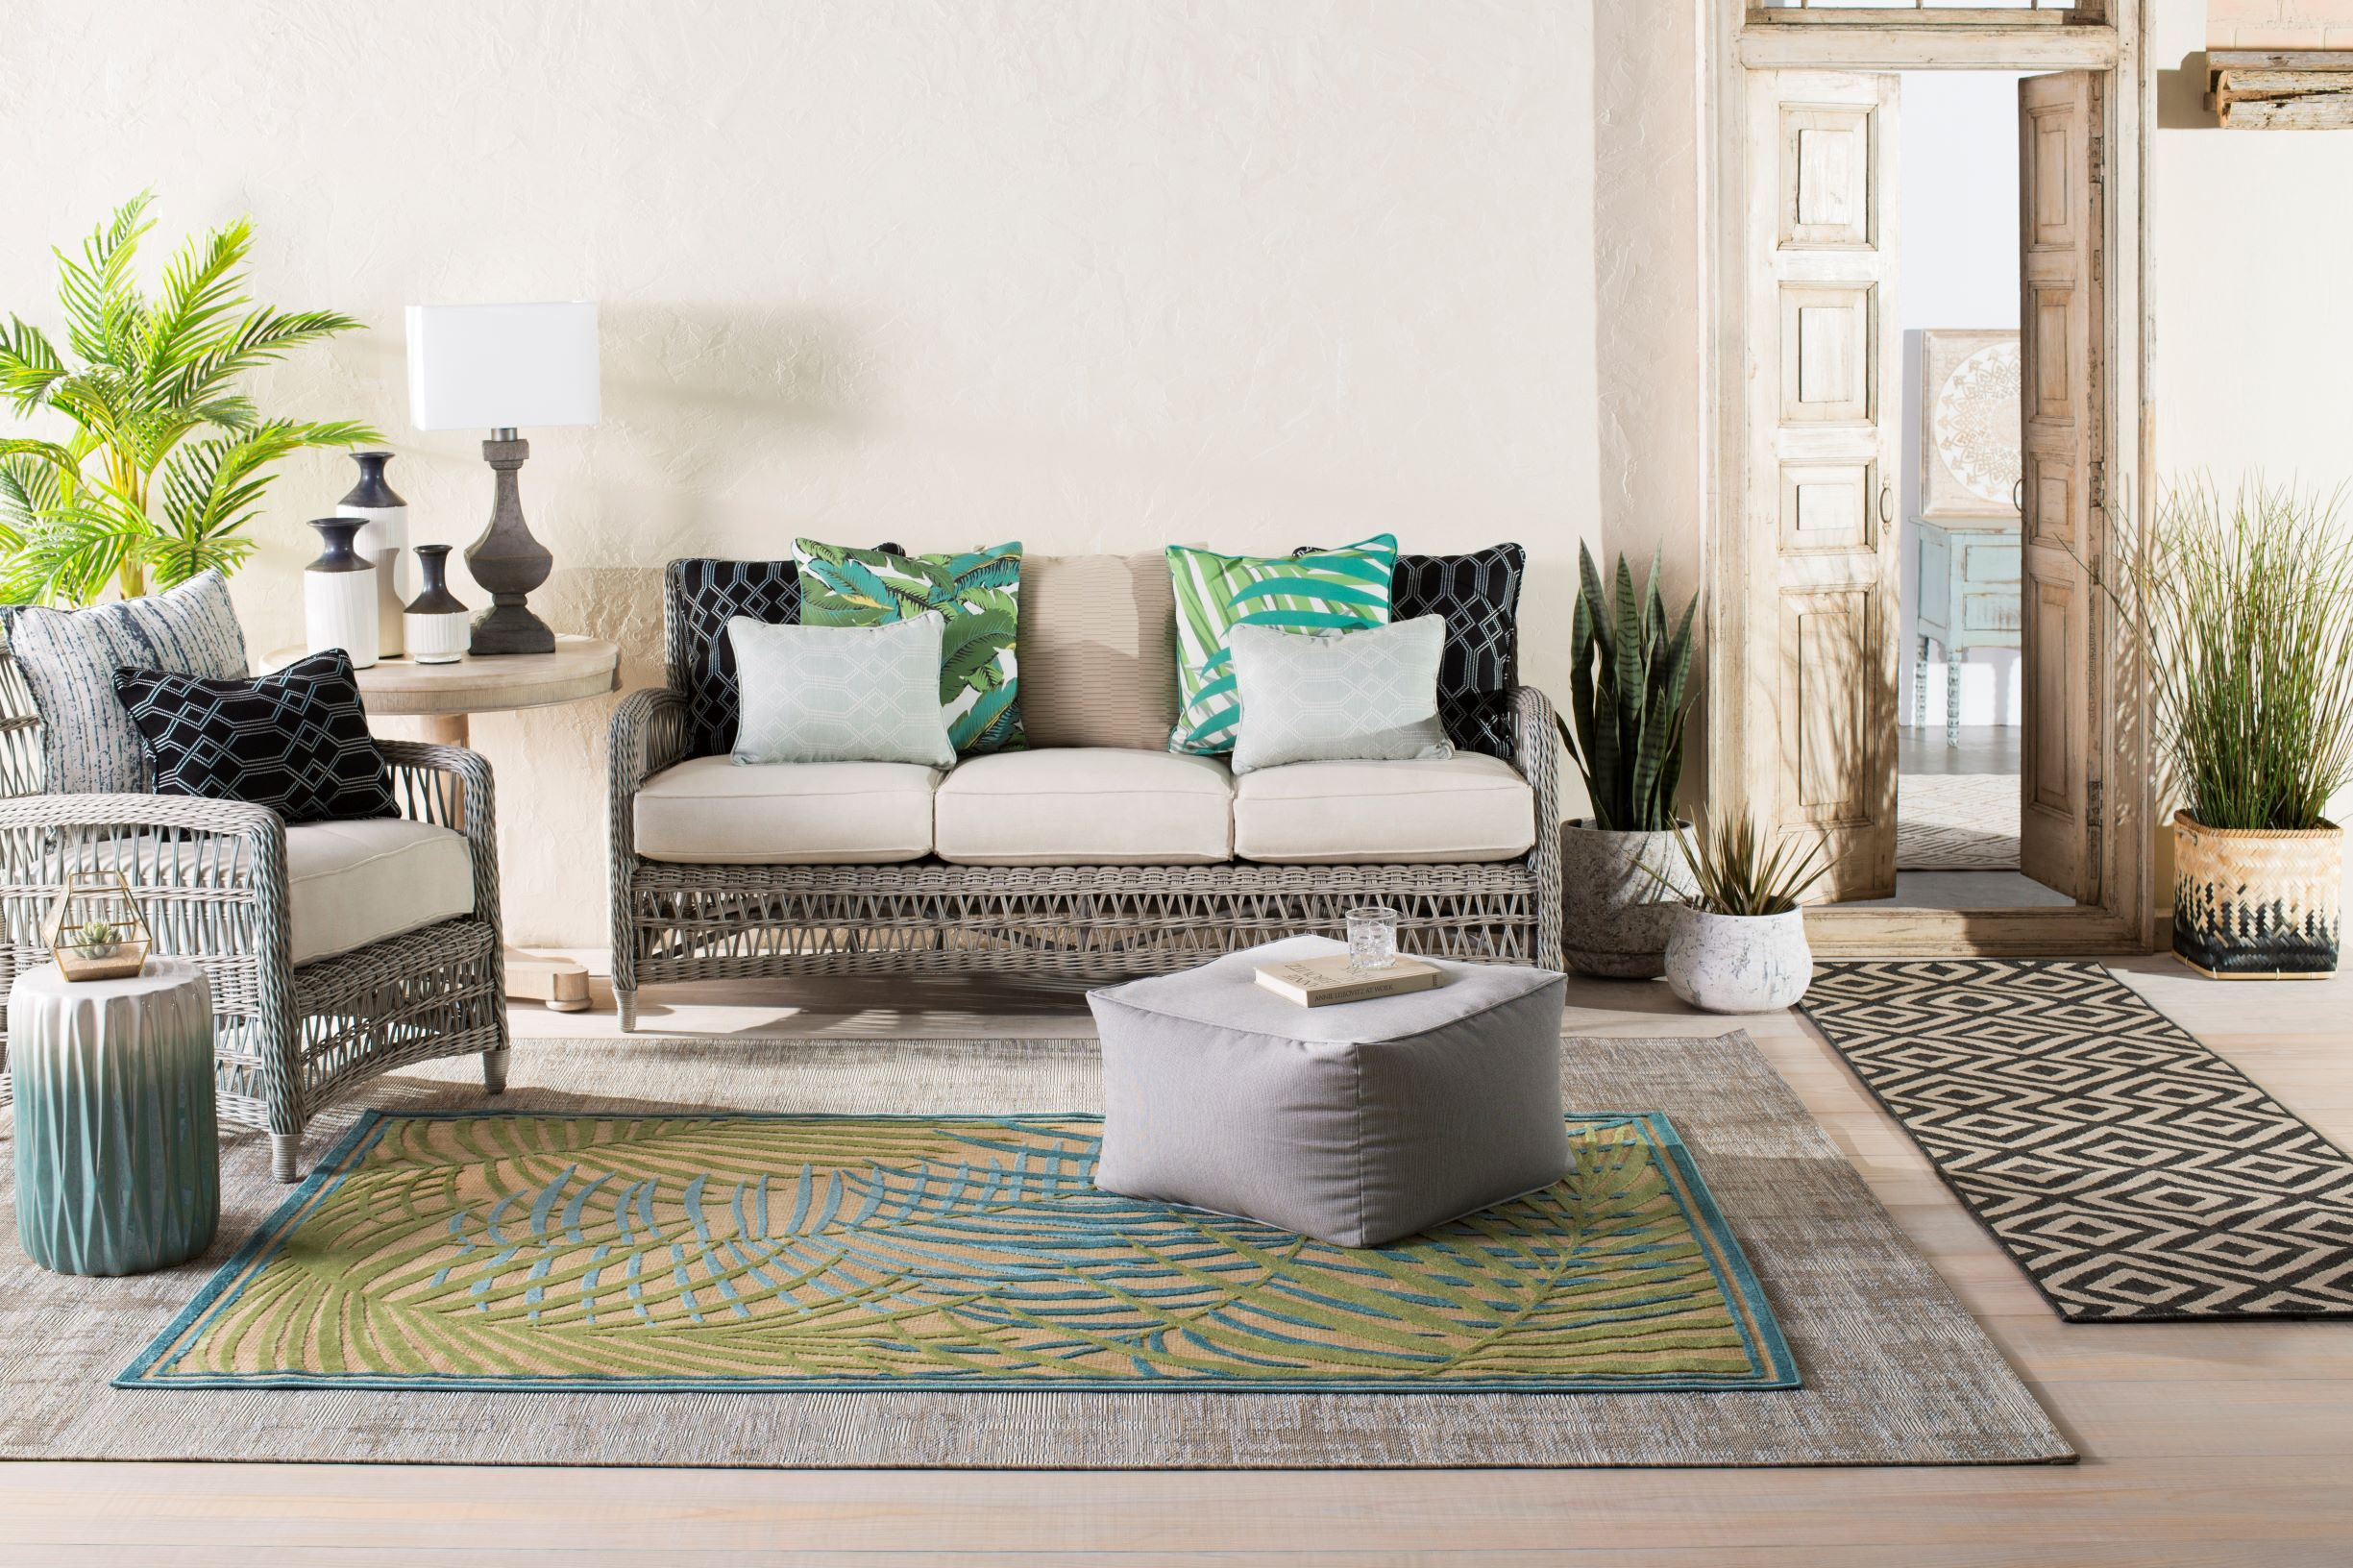 Matthew Phillips Top Questions Answered for Buying a Rug ...